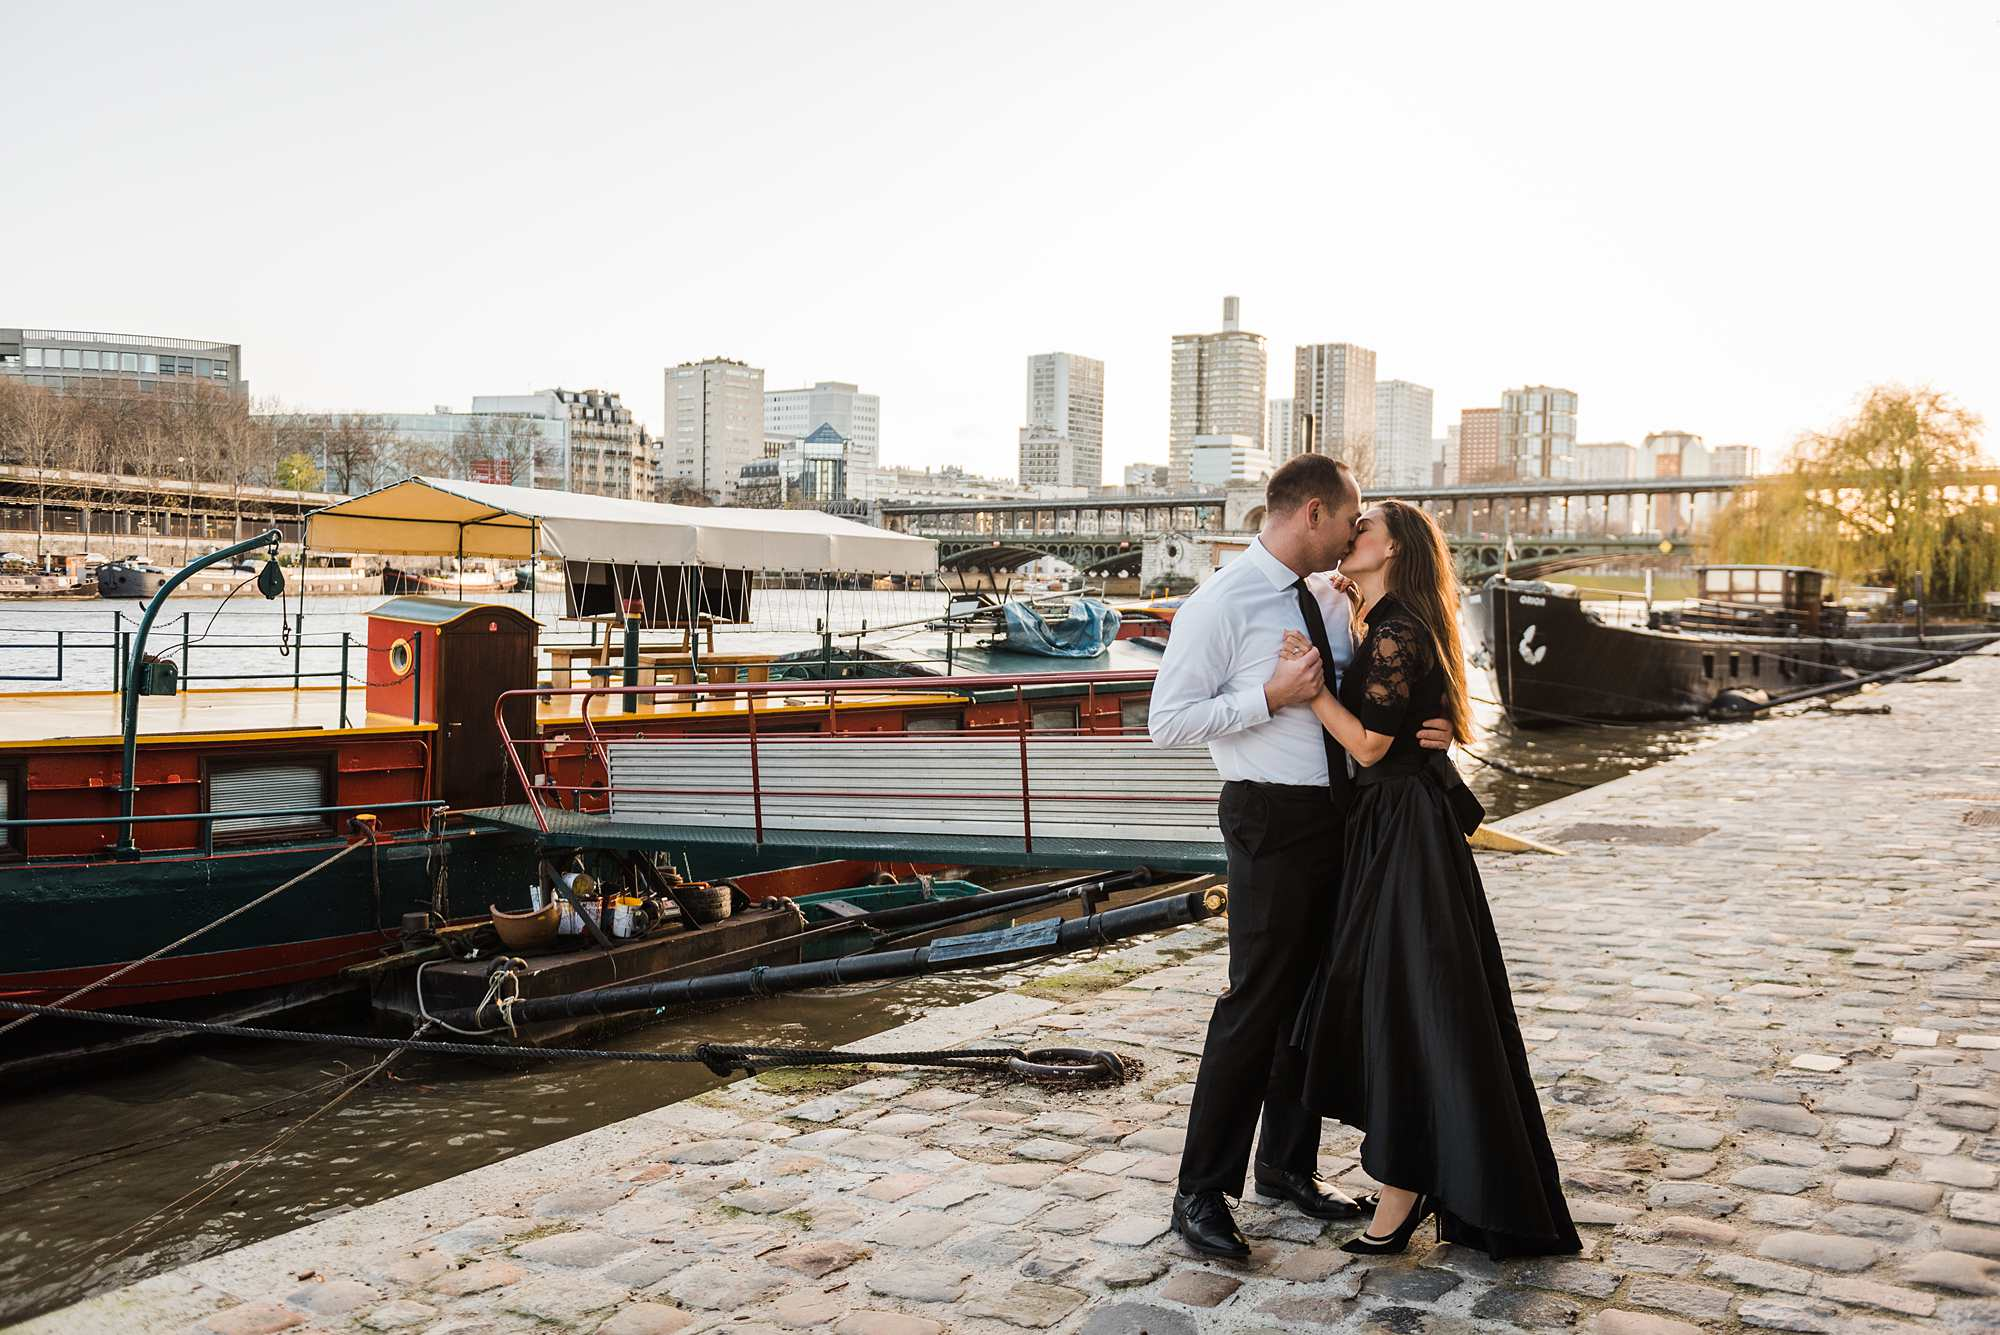 Jennifer and Yannick's Surprise Paris Proposal Photo Shoot at the Eiffel Tower - dancing together and kissing by the seine river